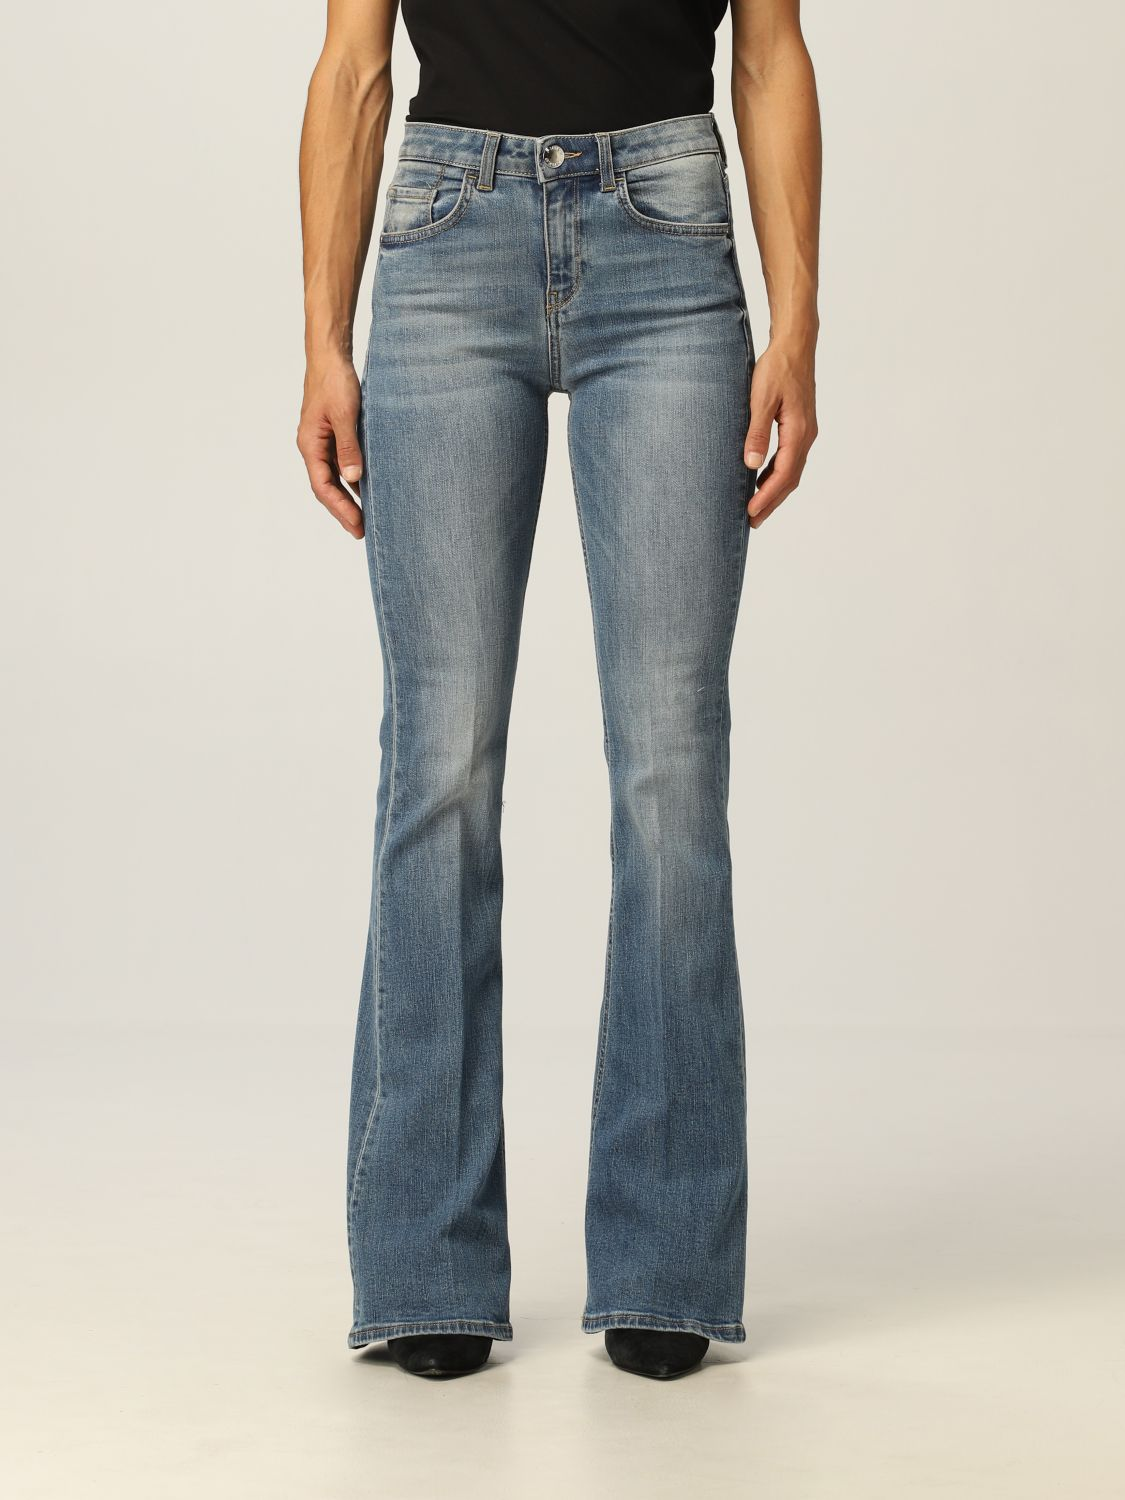 SHOPPING ON LINE PINKO JEANS CON LOGO FLORA 17 NEW COLLECTION WOMEN'S FALL/WINTER 2022